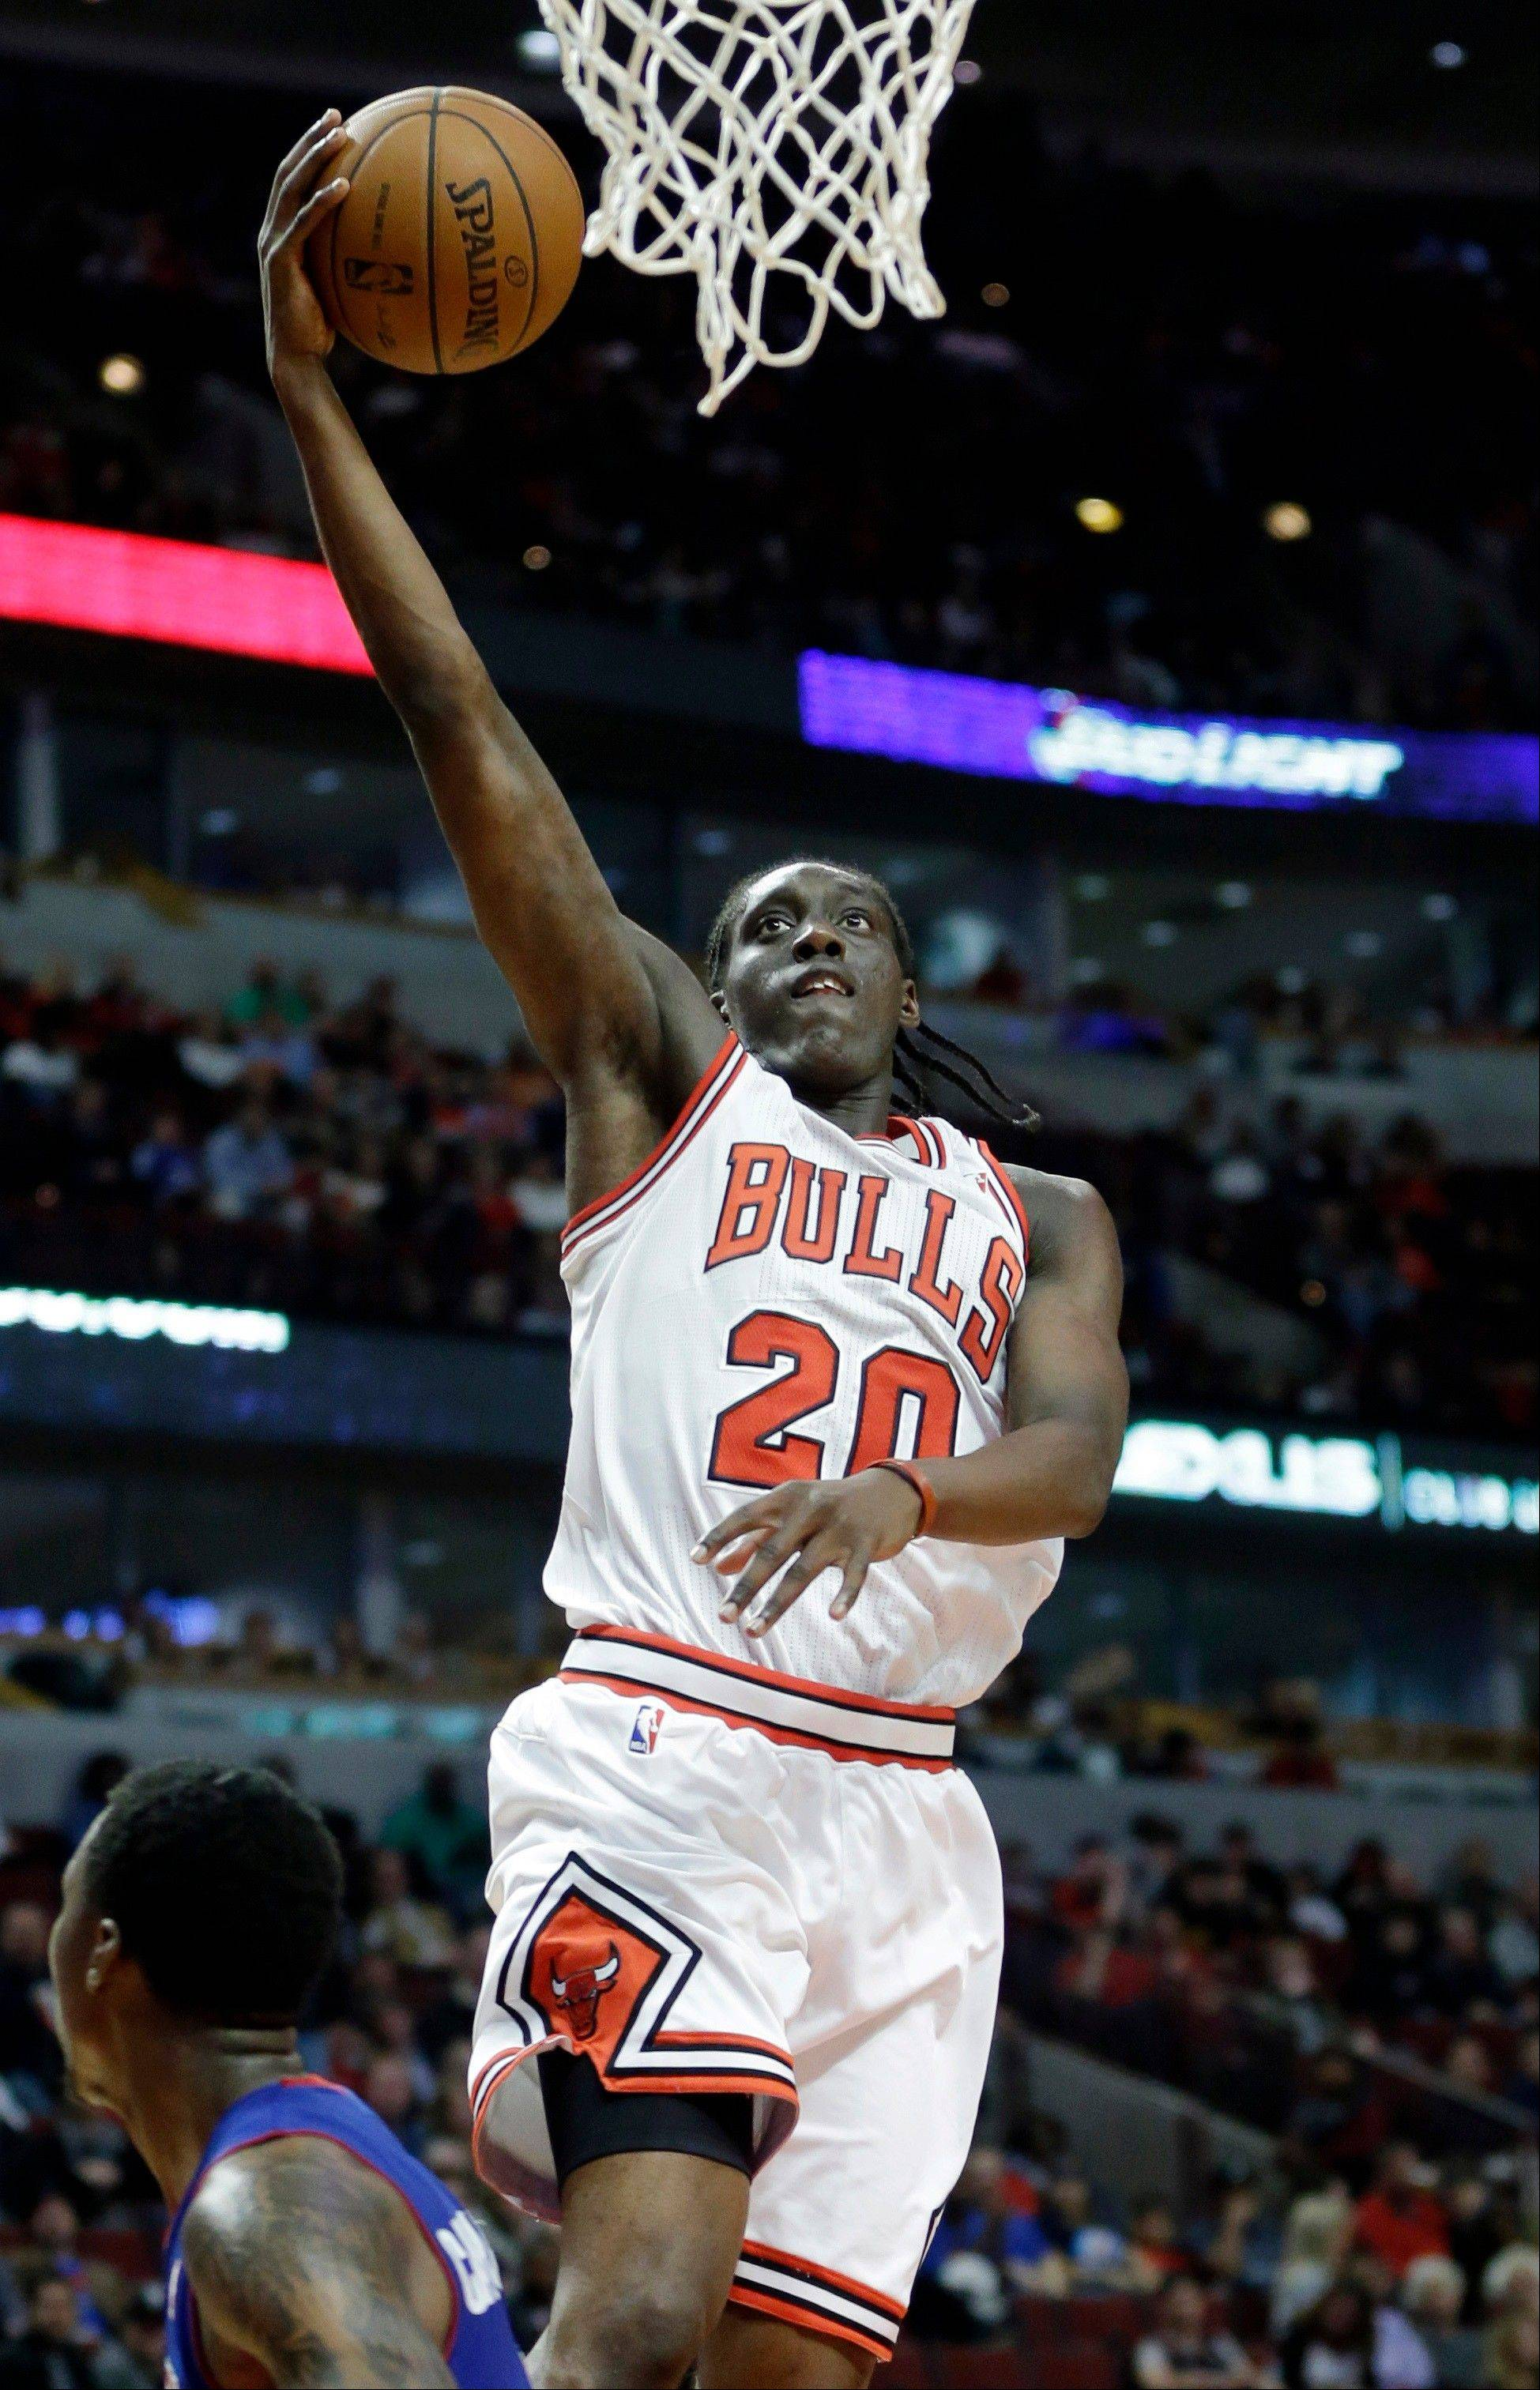 Bulls rookie forward Tony Snell drives to the basket during the second half of an NBA preseason basketball game against the Detroit Pistons in Chicago on Wednesday, Oct. 16, 2013. The Bulls won 96-81.